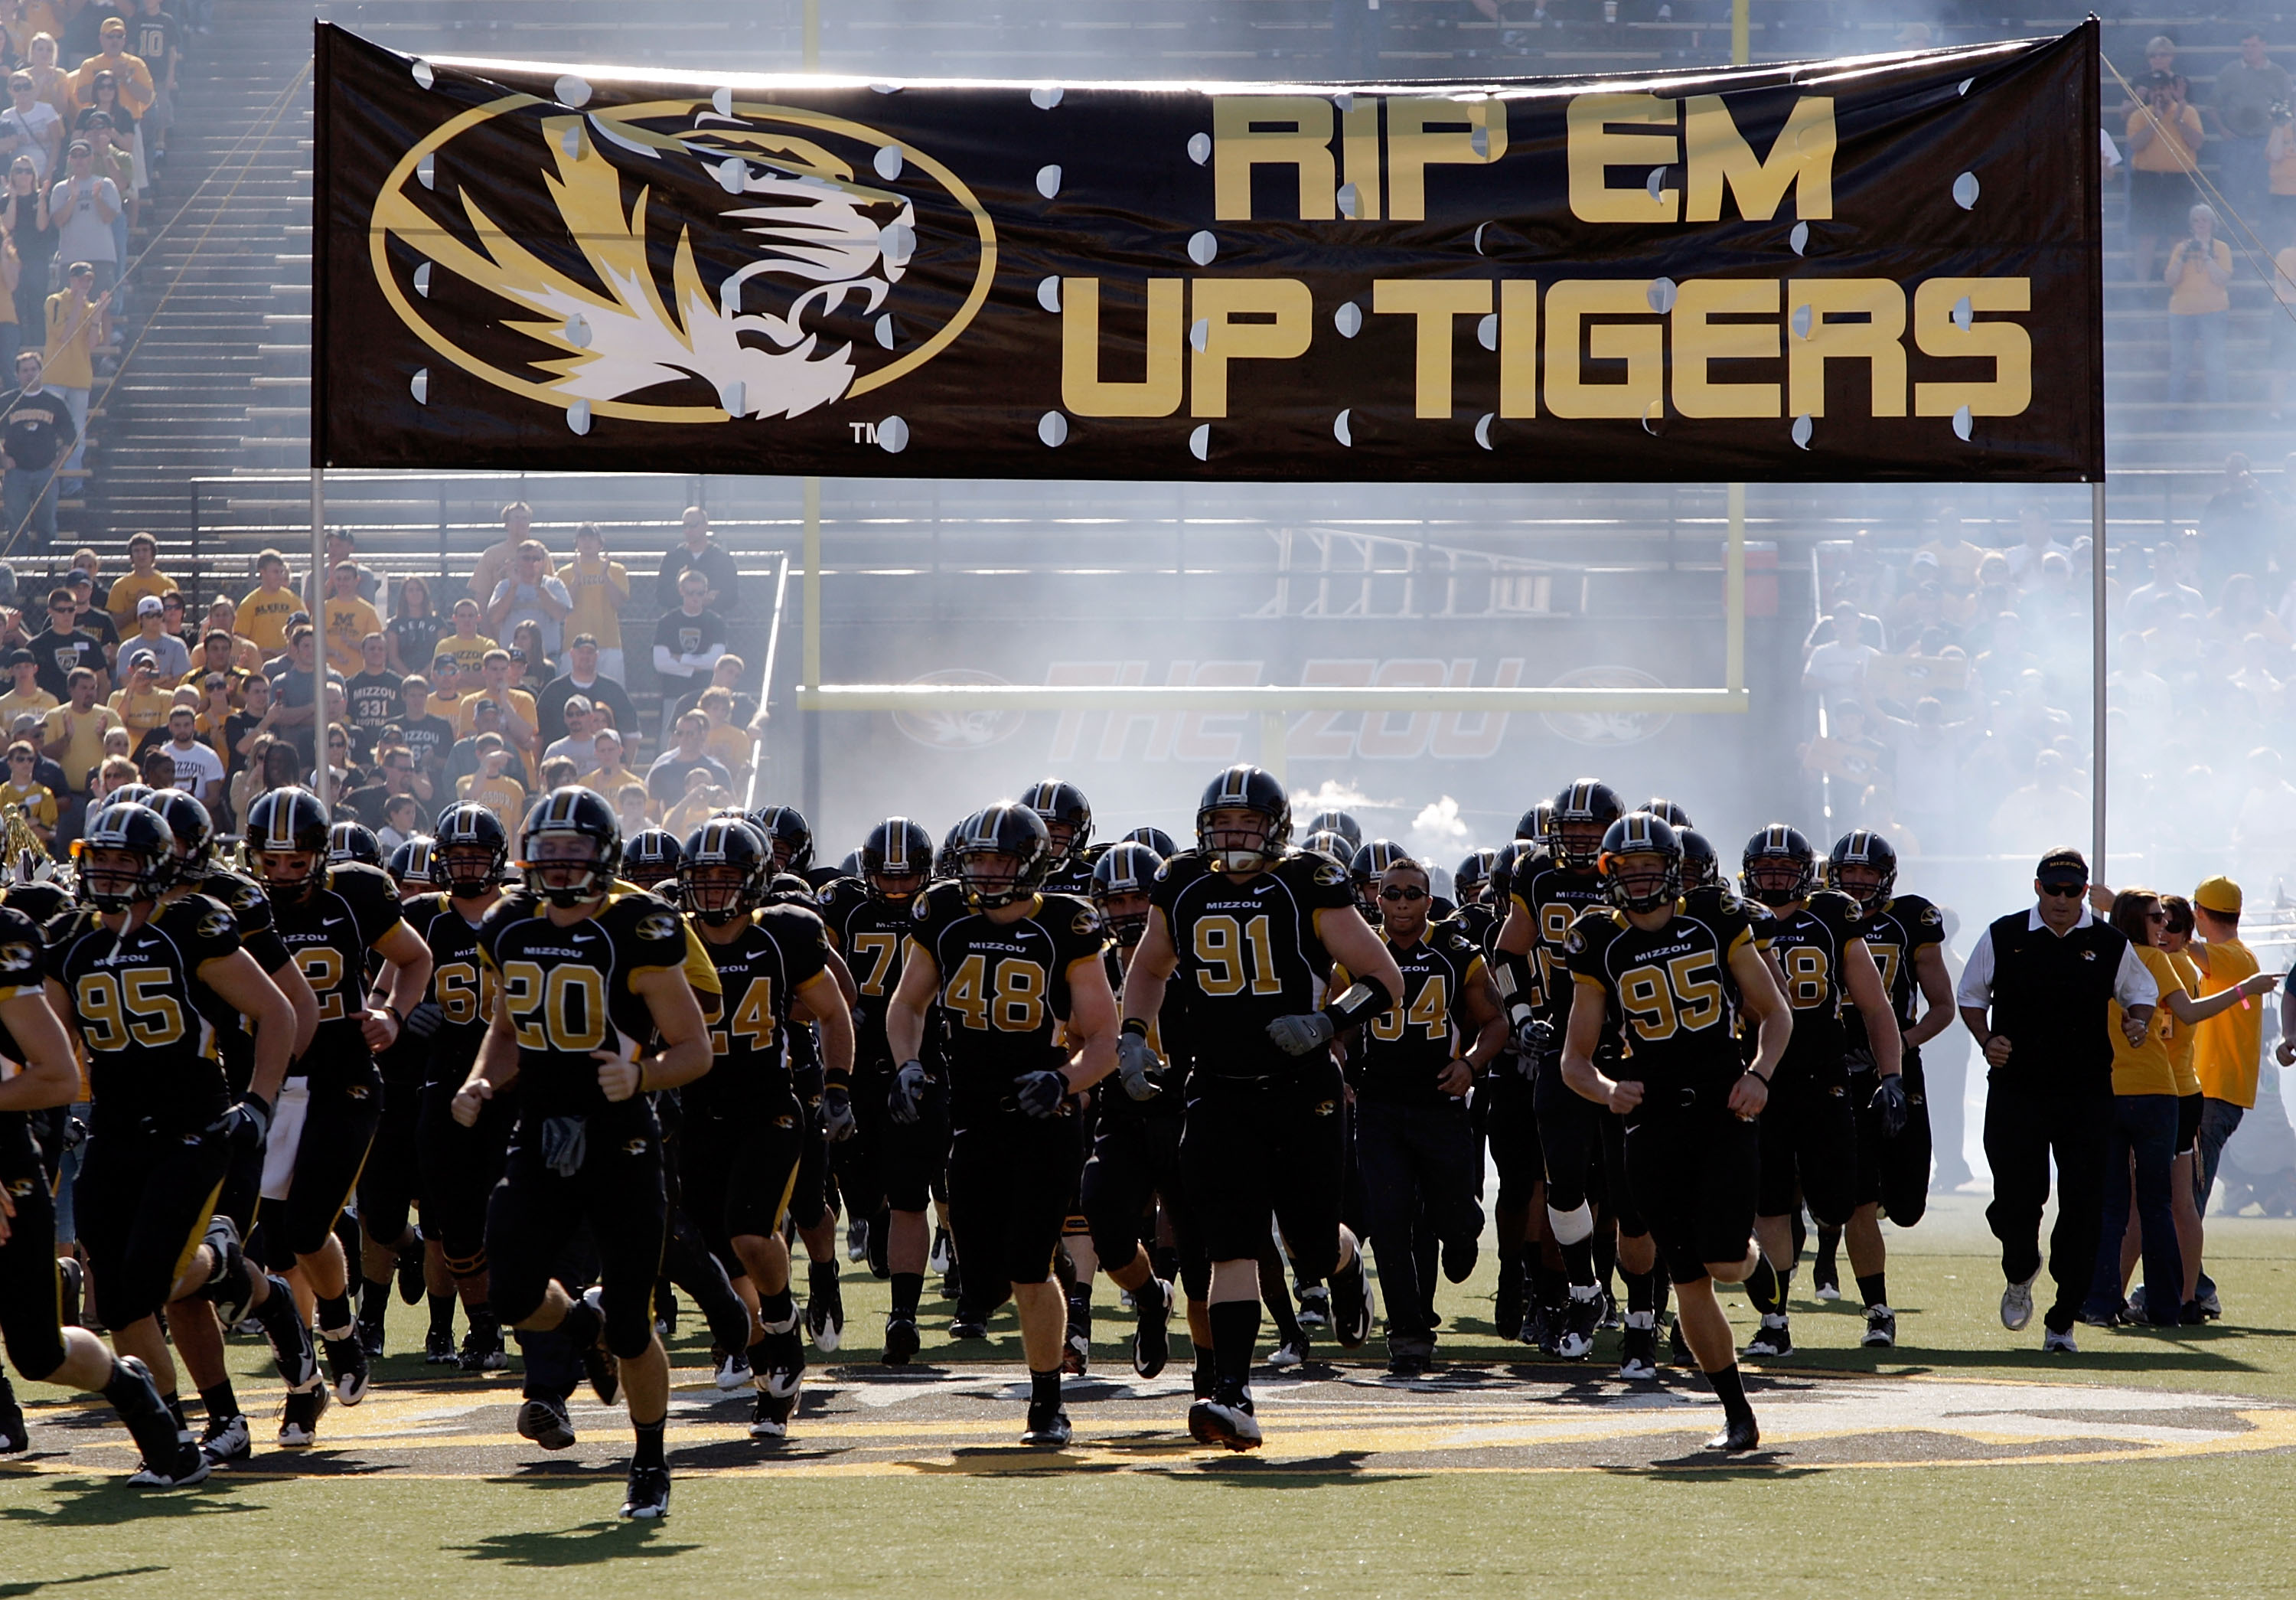 Tigers Are Ready For Action In The Big 12 North